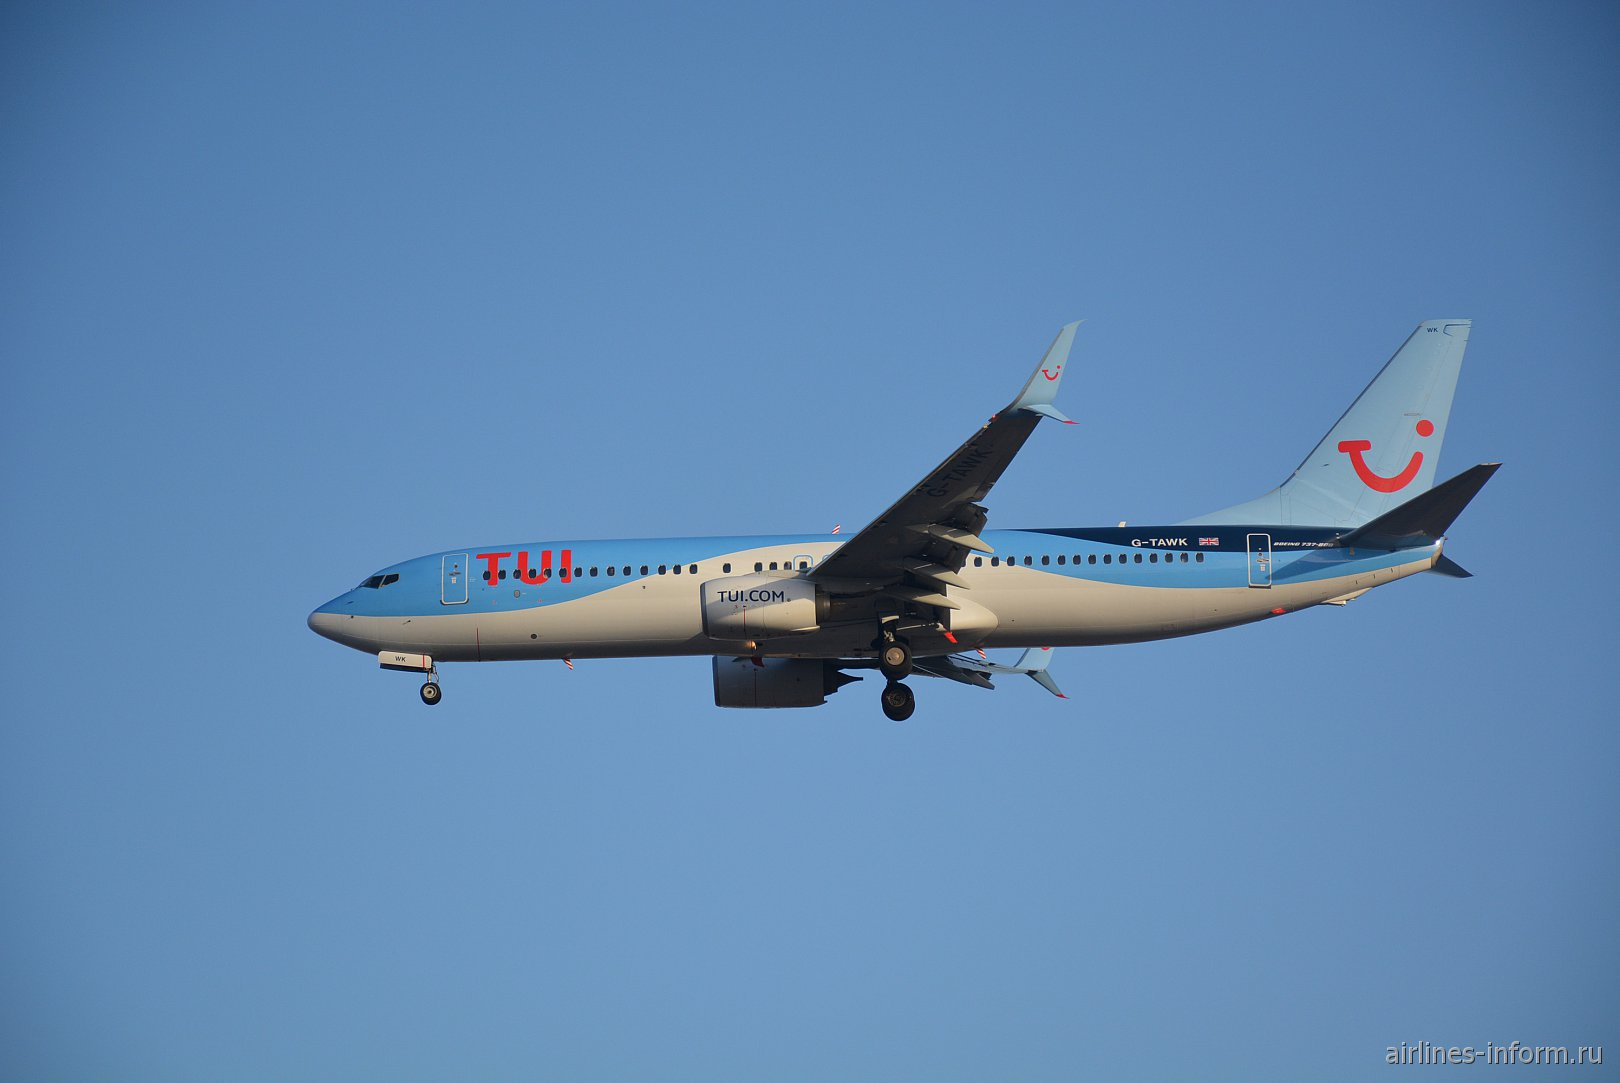 Boeing 737-800 с номером G-TAWK авиакомпании Thomson Airways